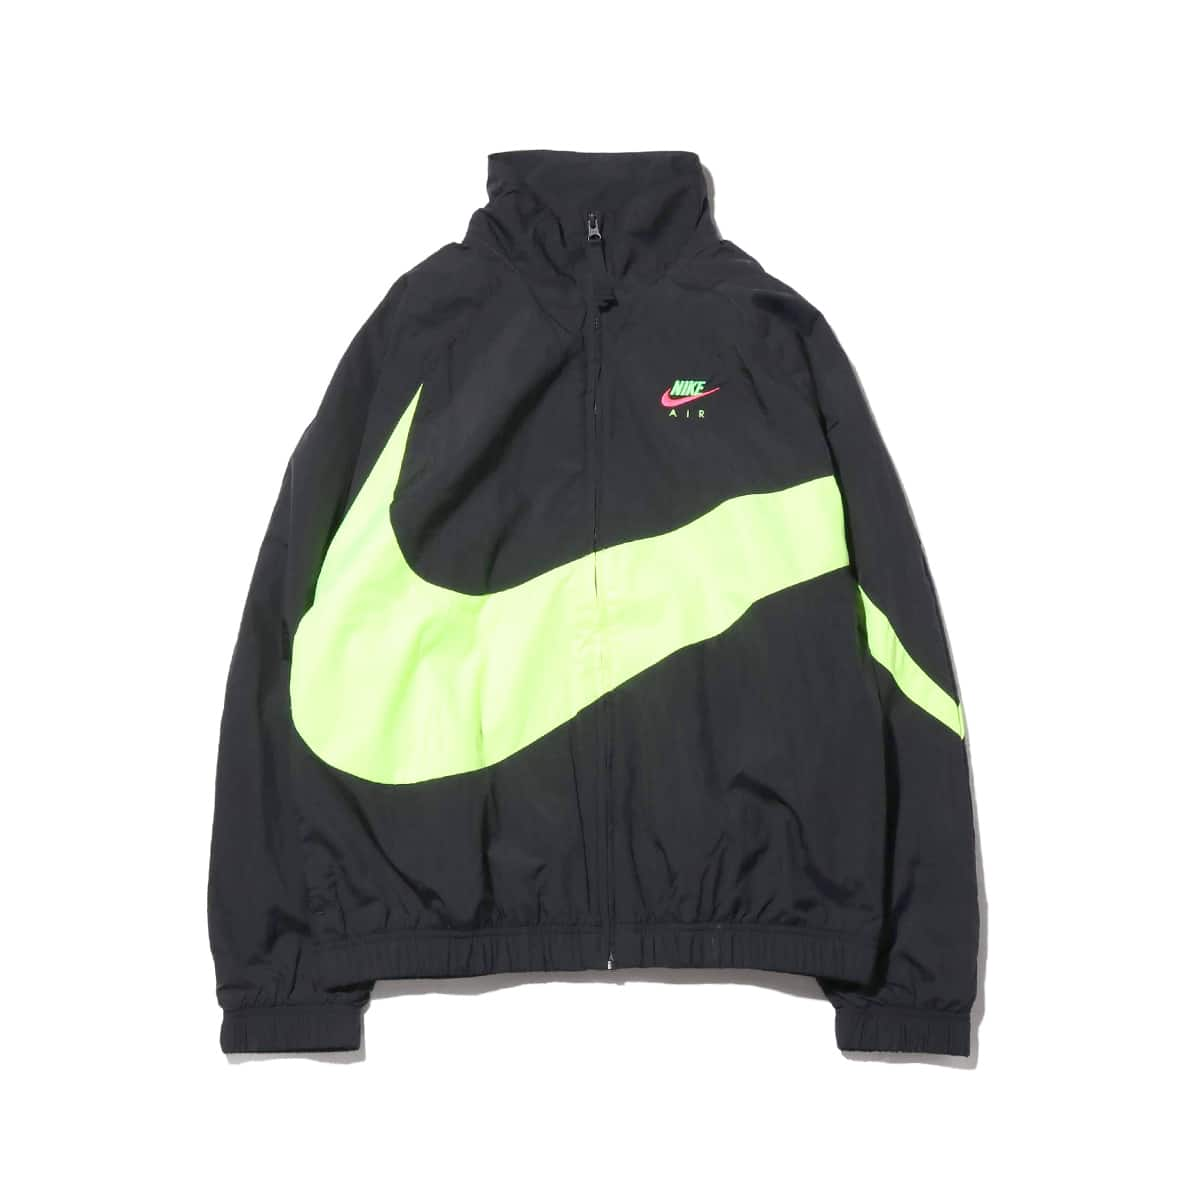 NIKE CITY NEON HBR WOOVEN JKT CD9262-010 TOKYO NEON COLLECTION Japan Limited